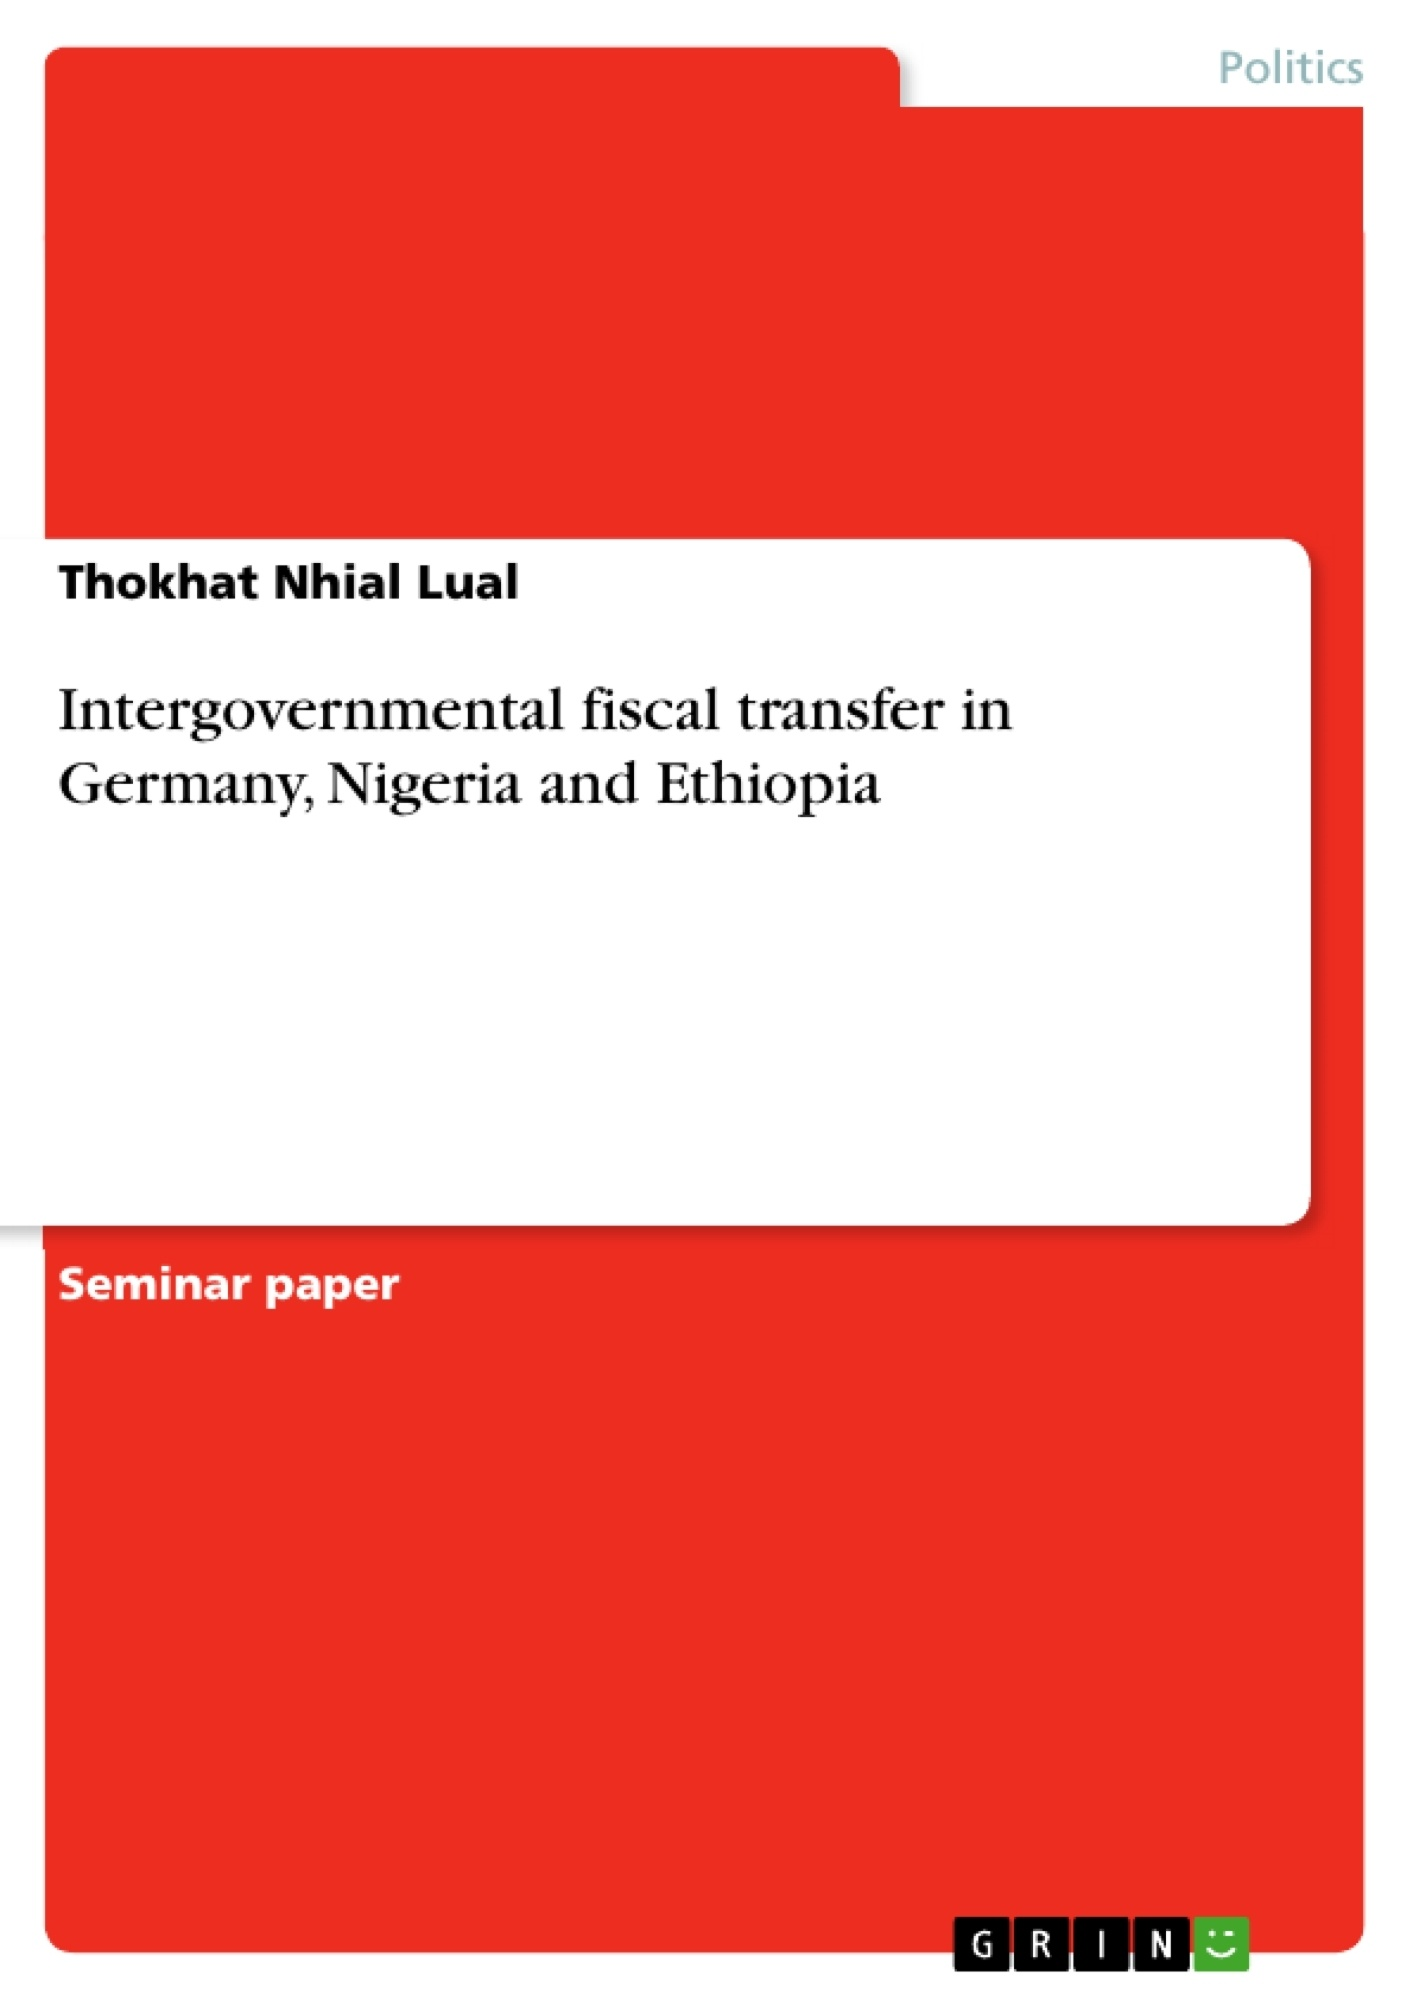 Title: Intergovernmental fiscal transfer in Germany, Nigeria and Ethiopia